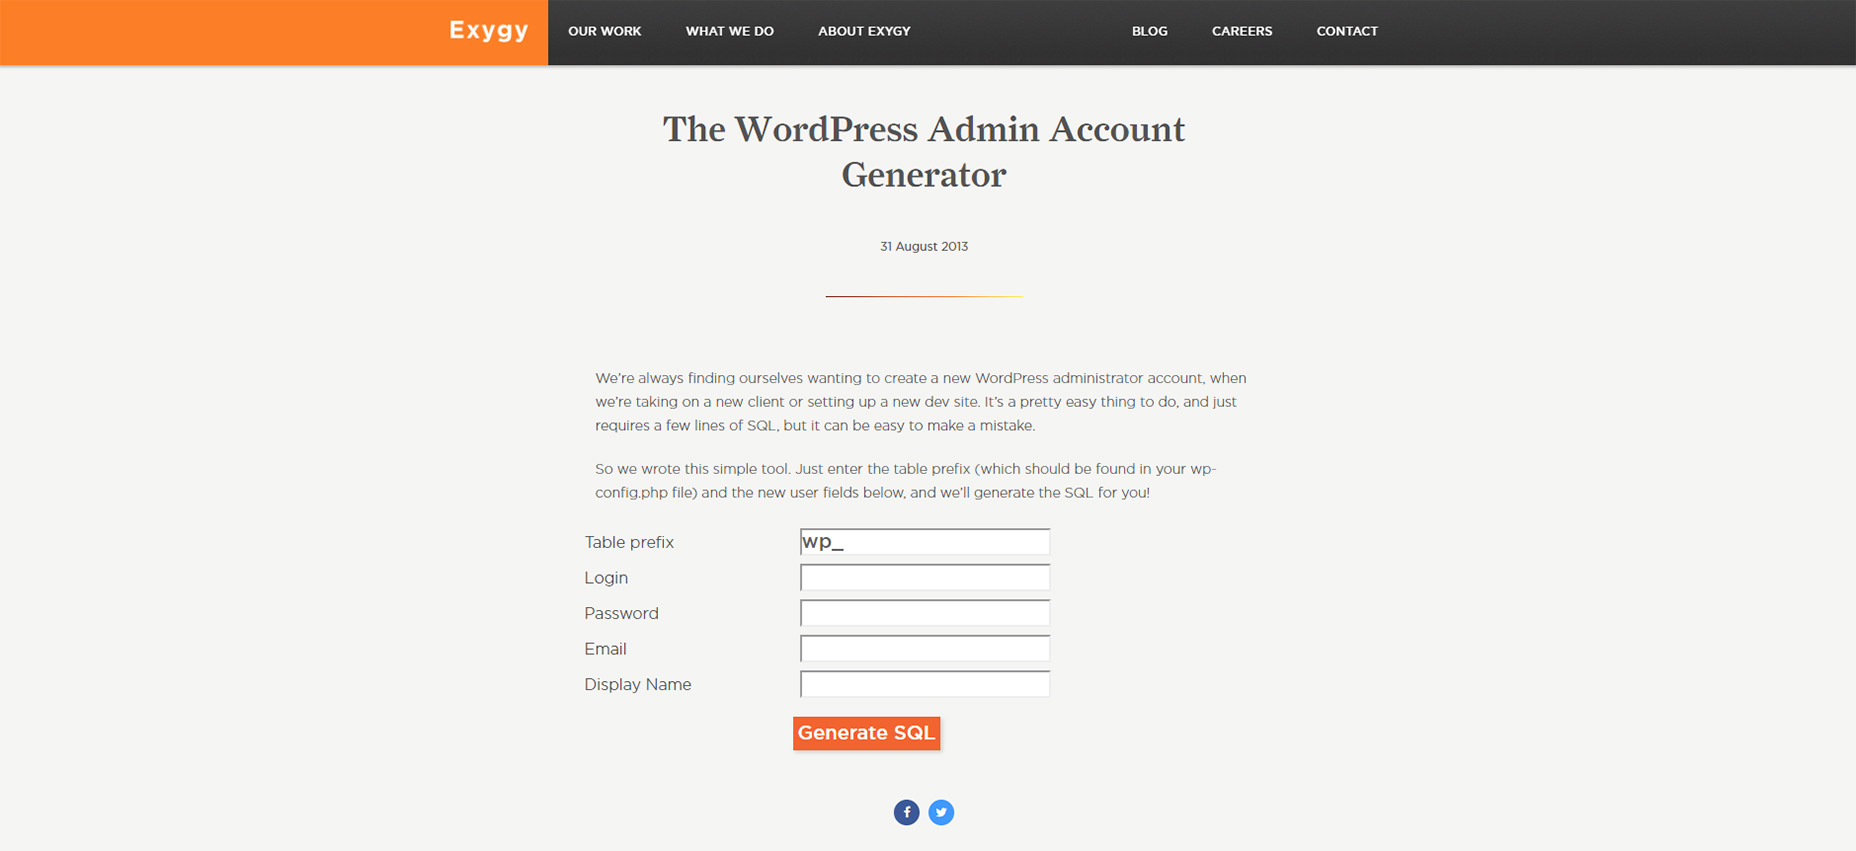 07-wordpress-admin-account-generator